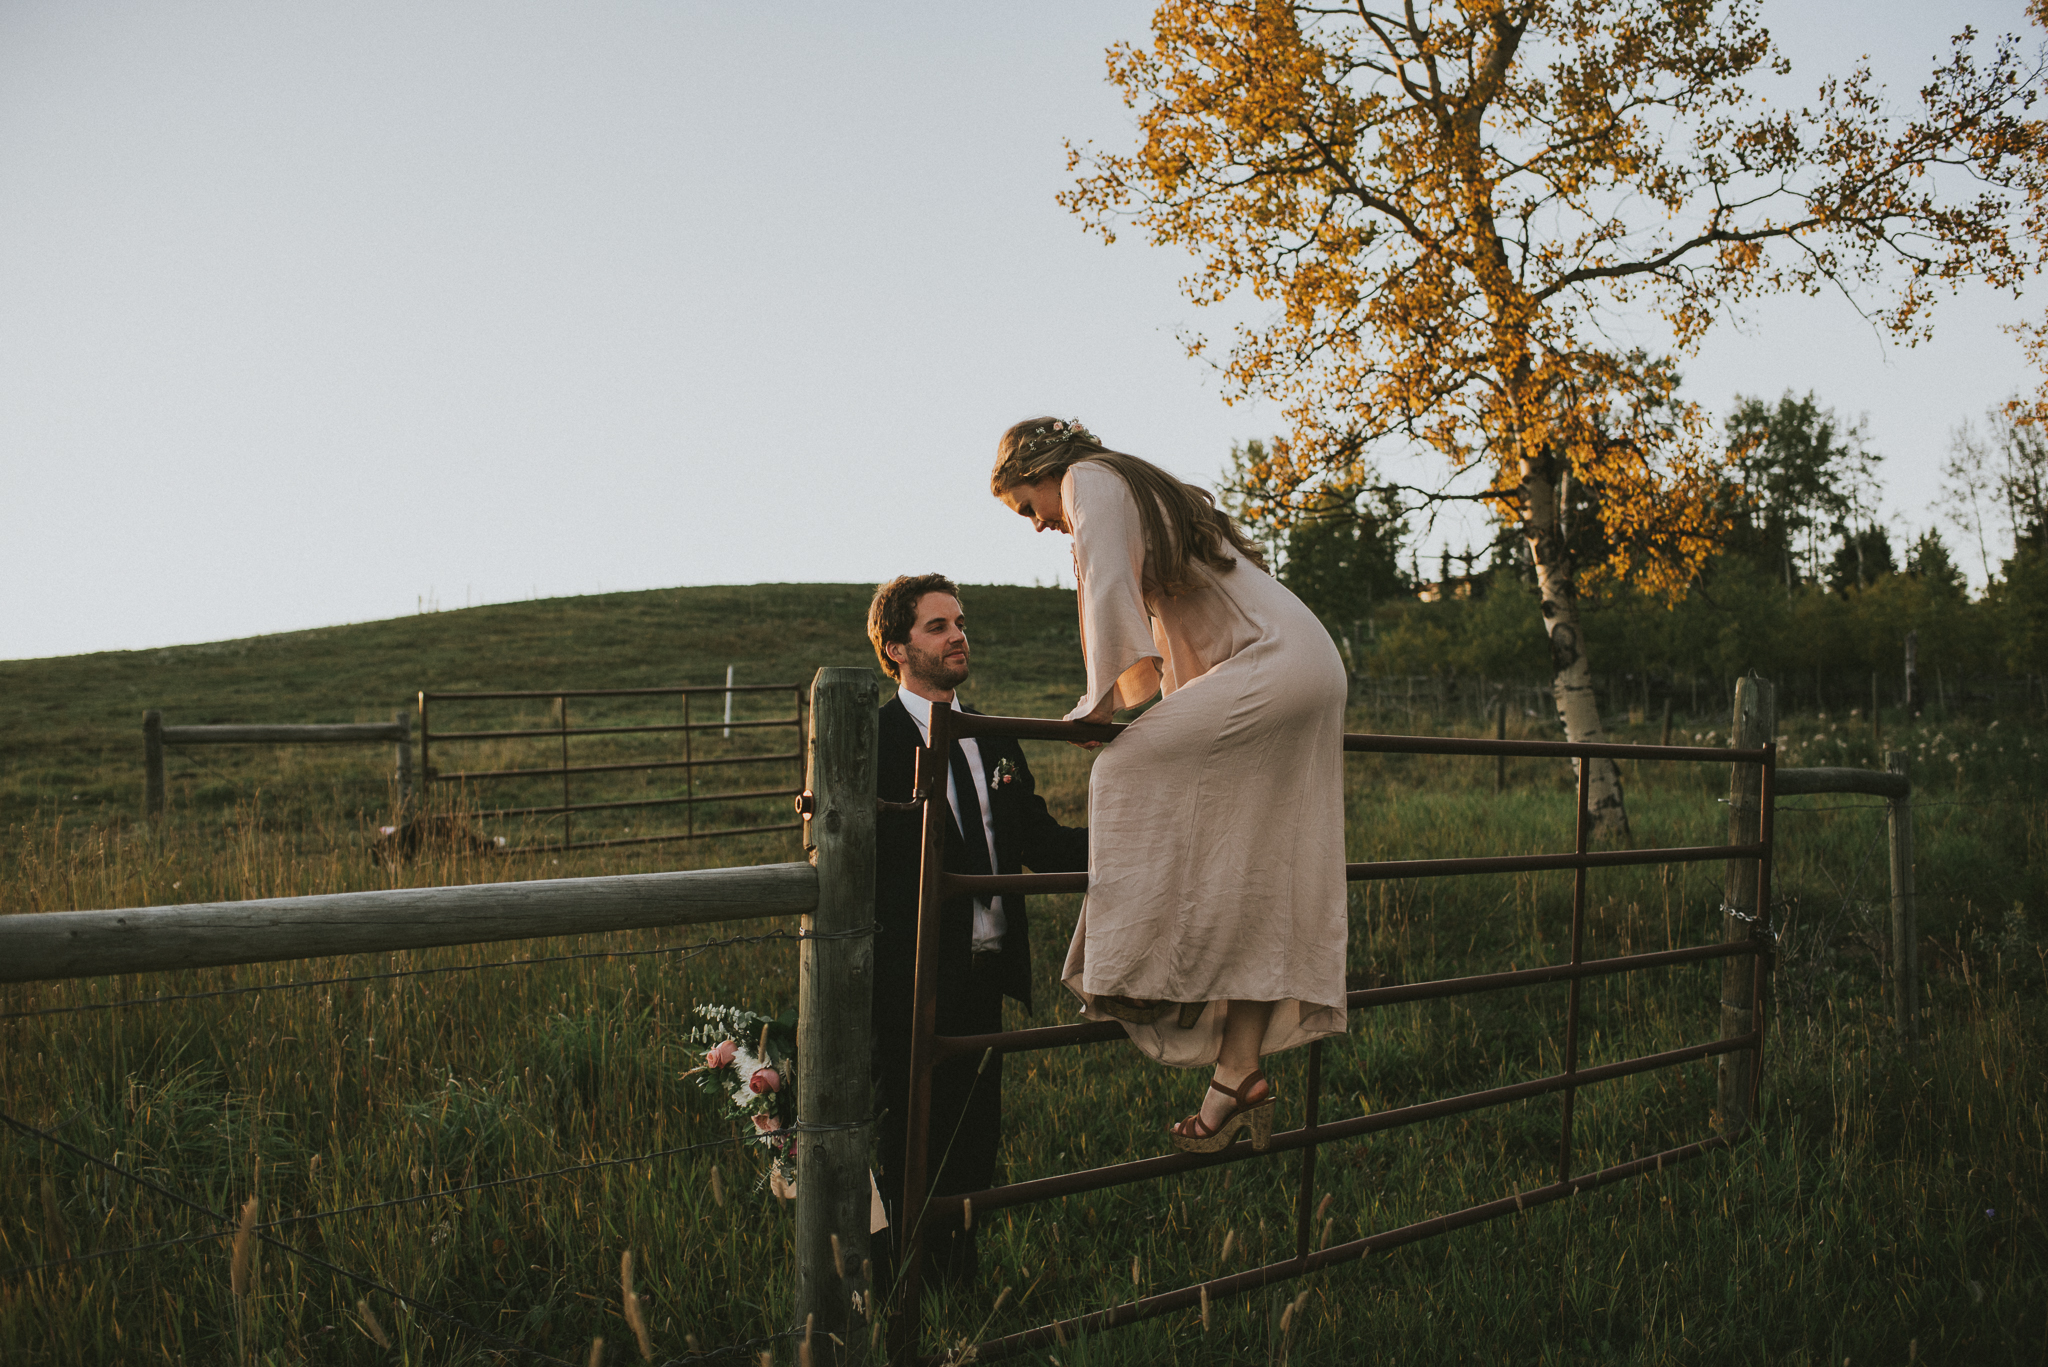 Rockies Alberta Elopement